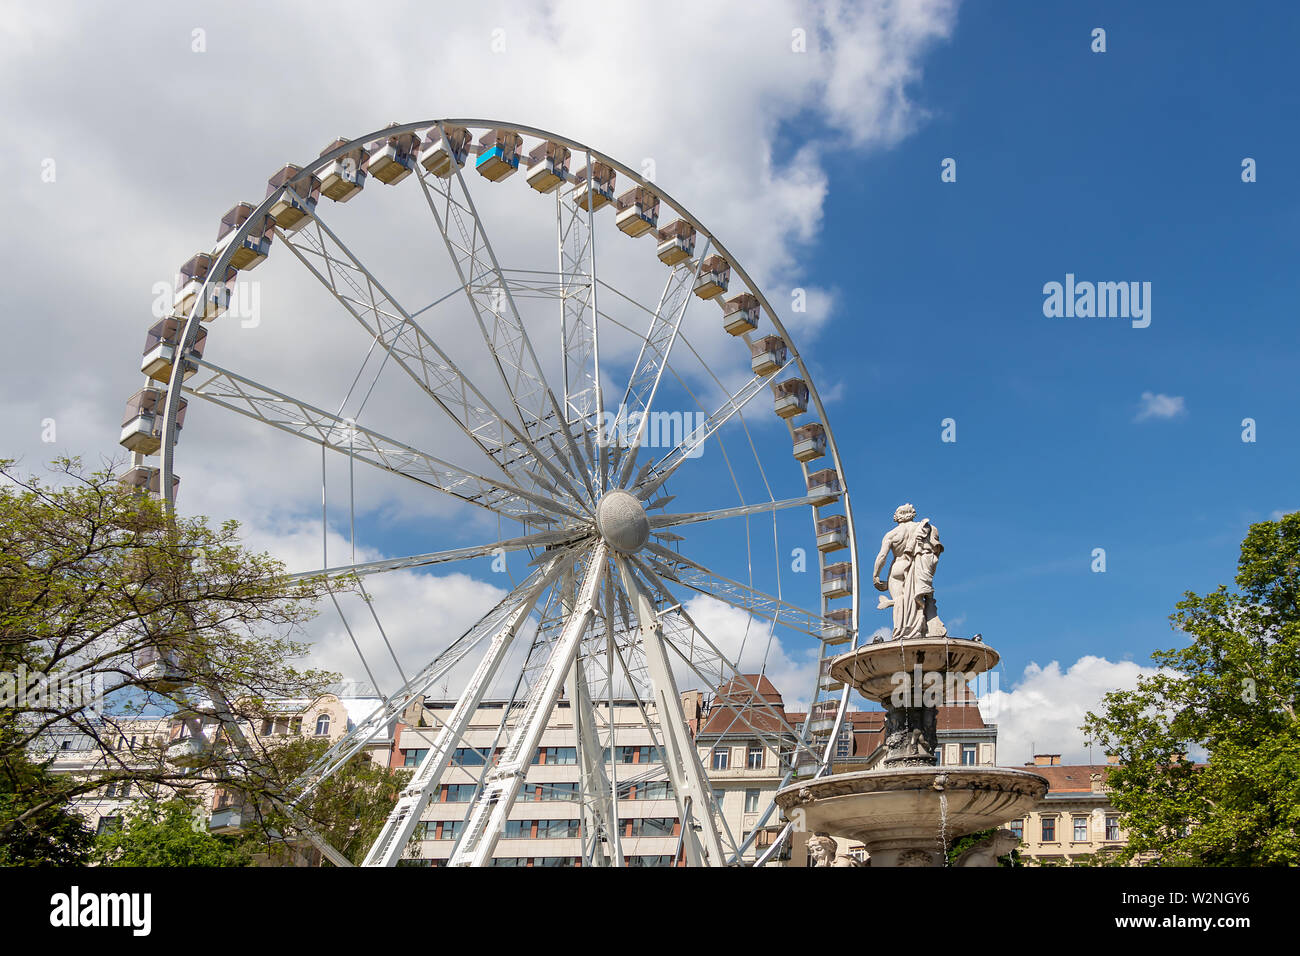 Budapest, Hungary - May 25, 2019 : View of the ferris wheel in Erzsebet square in Budapest, Hungary Stock Photo